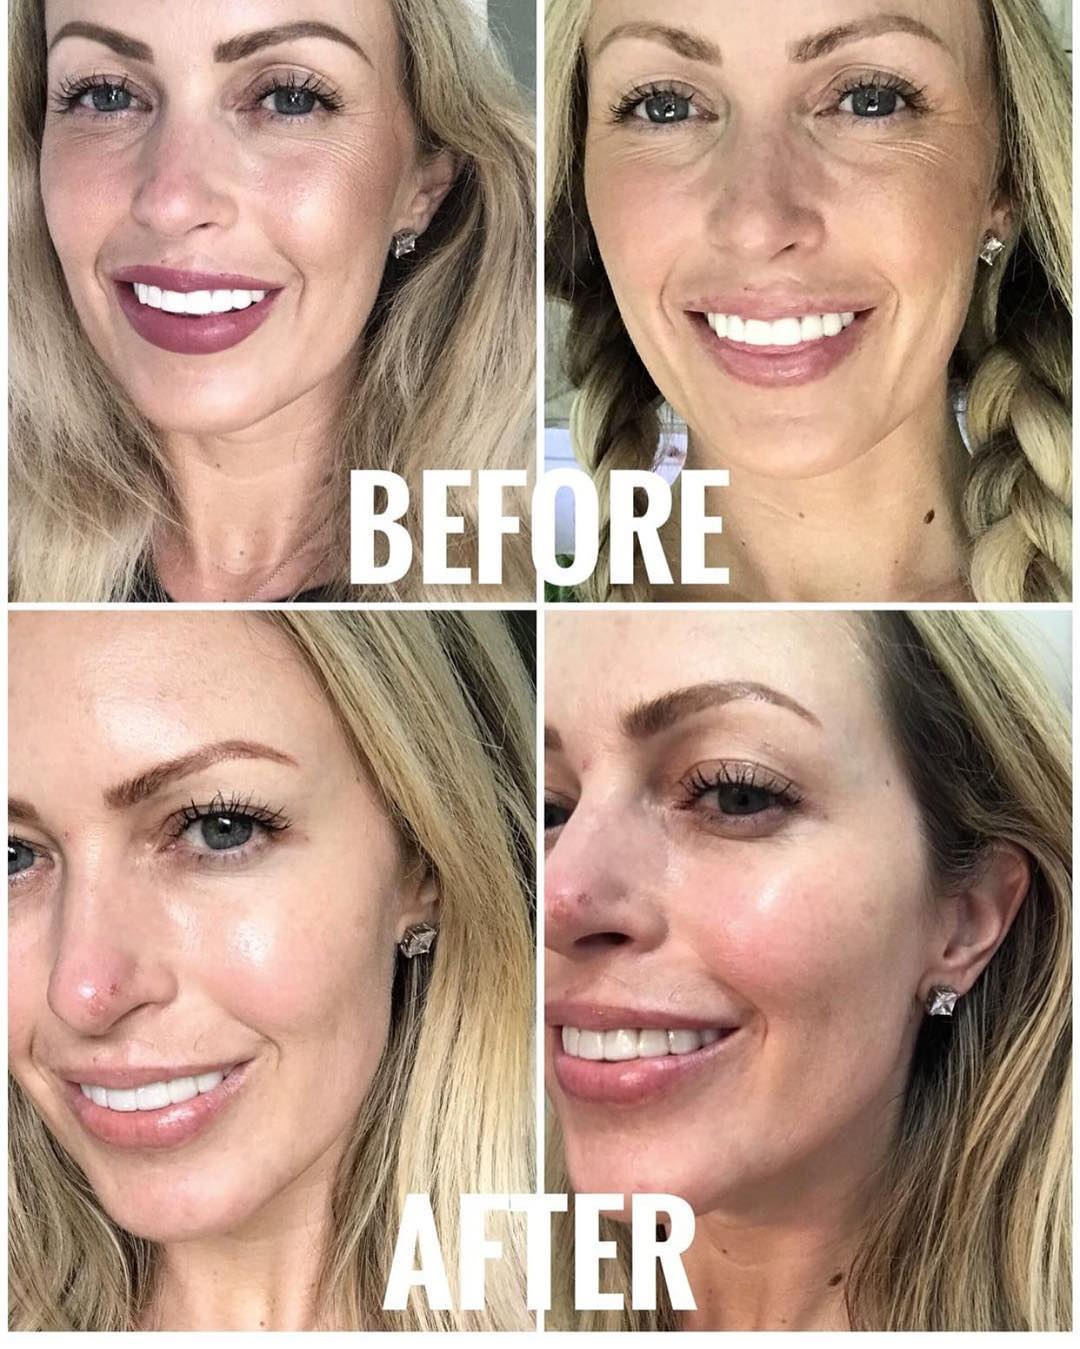 Here are some amazing Botox before & afters from one of our favorite clients These are self-provided, original and unretouched photos.